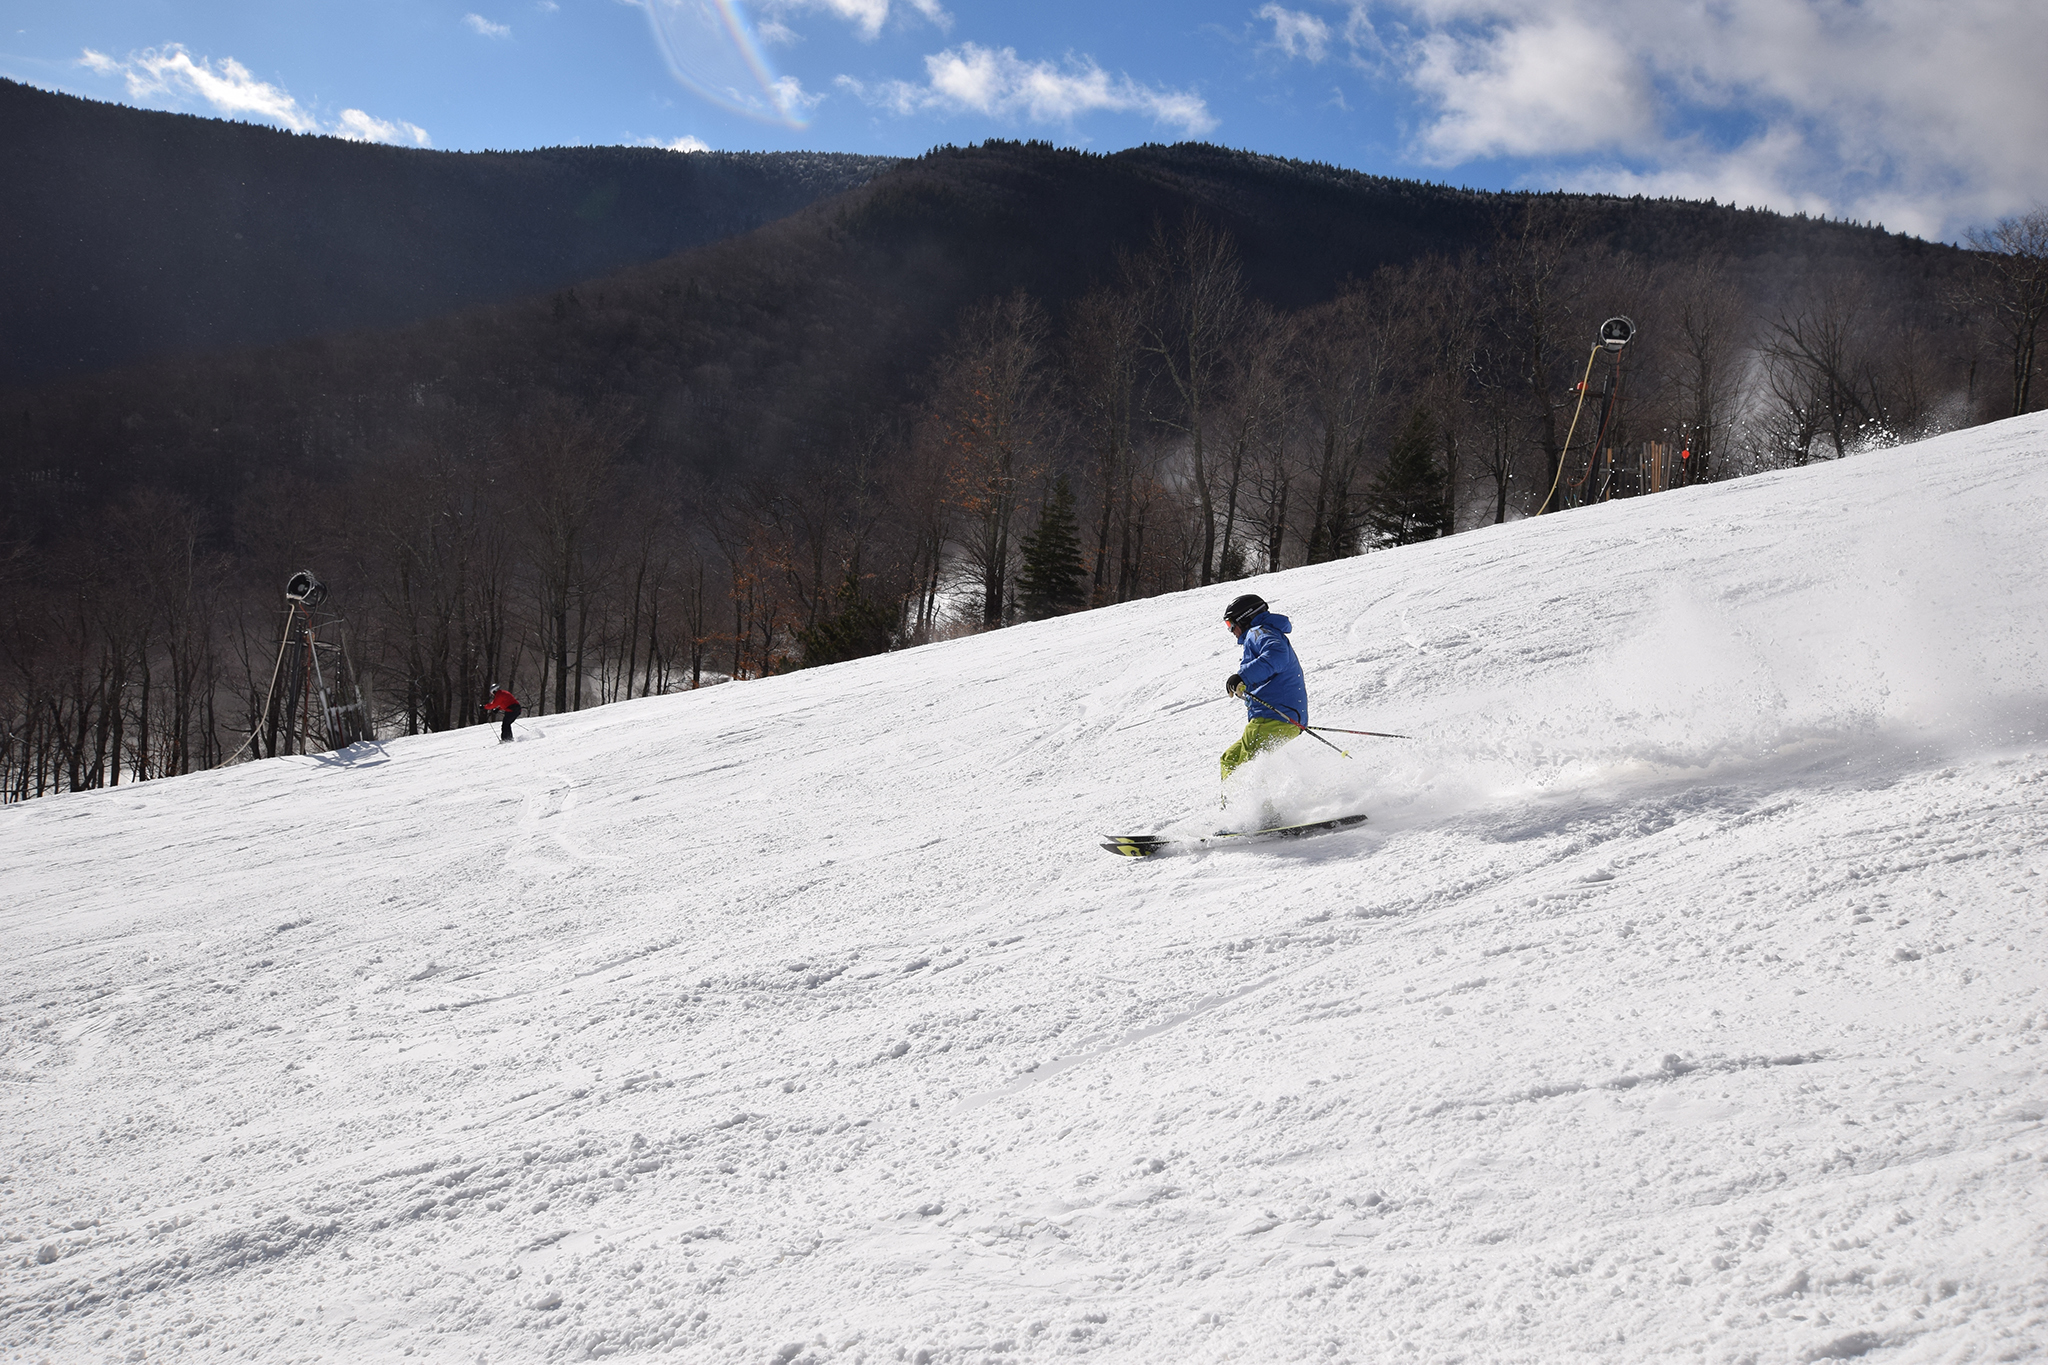 Where to try Winter Olympic sports near NYC